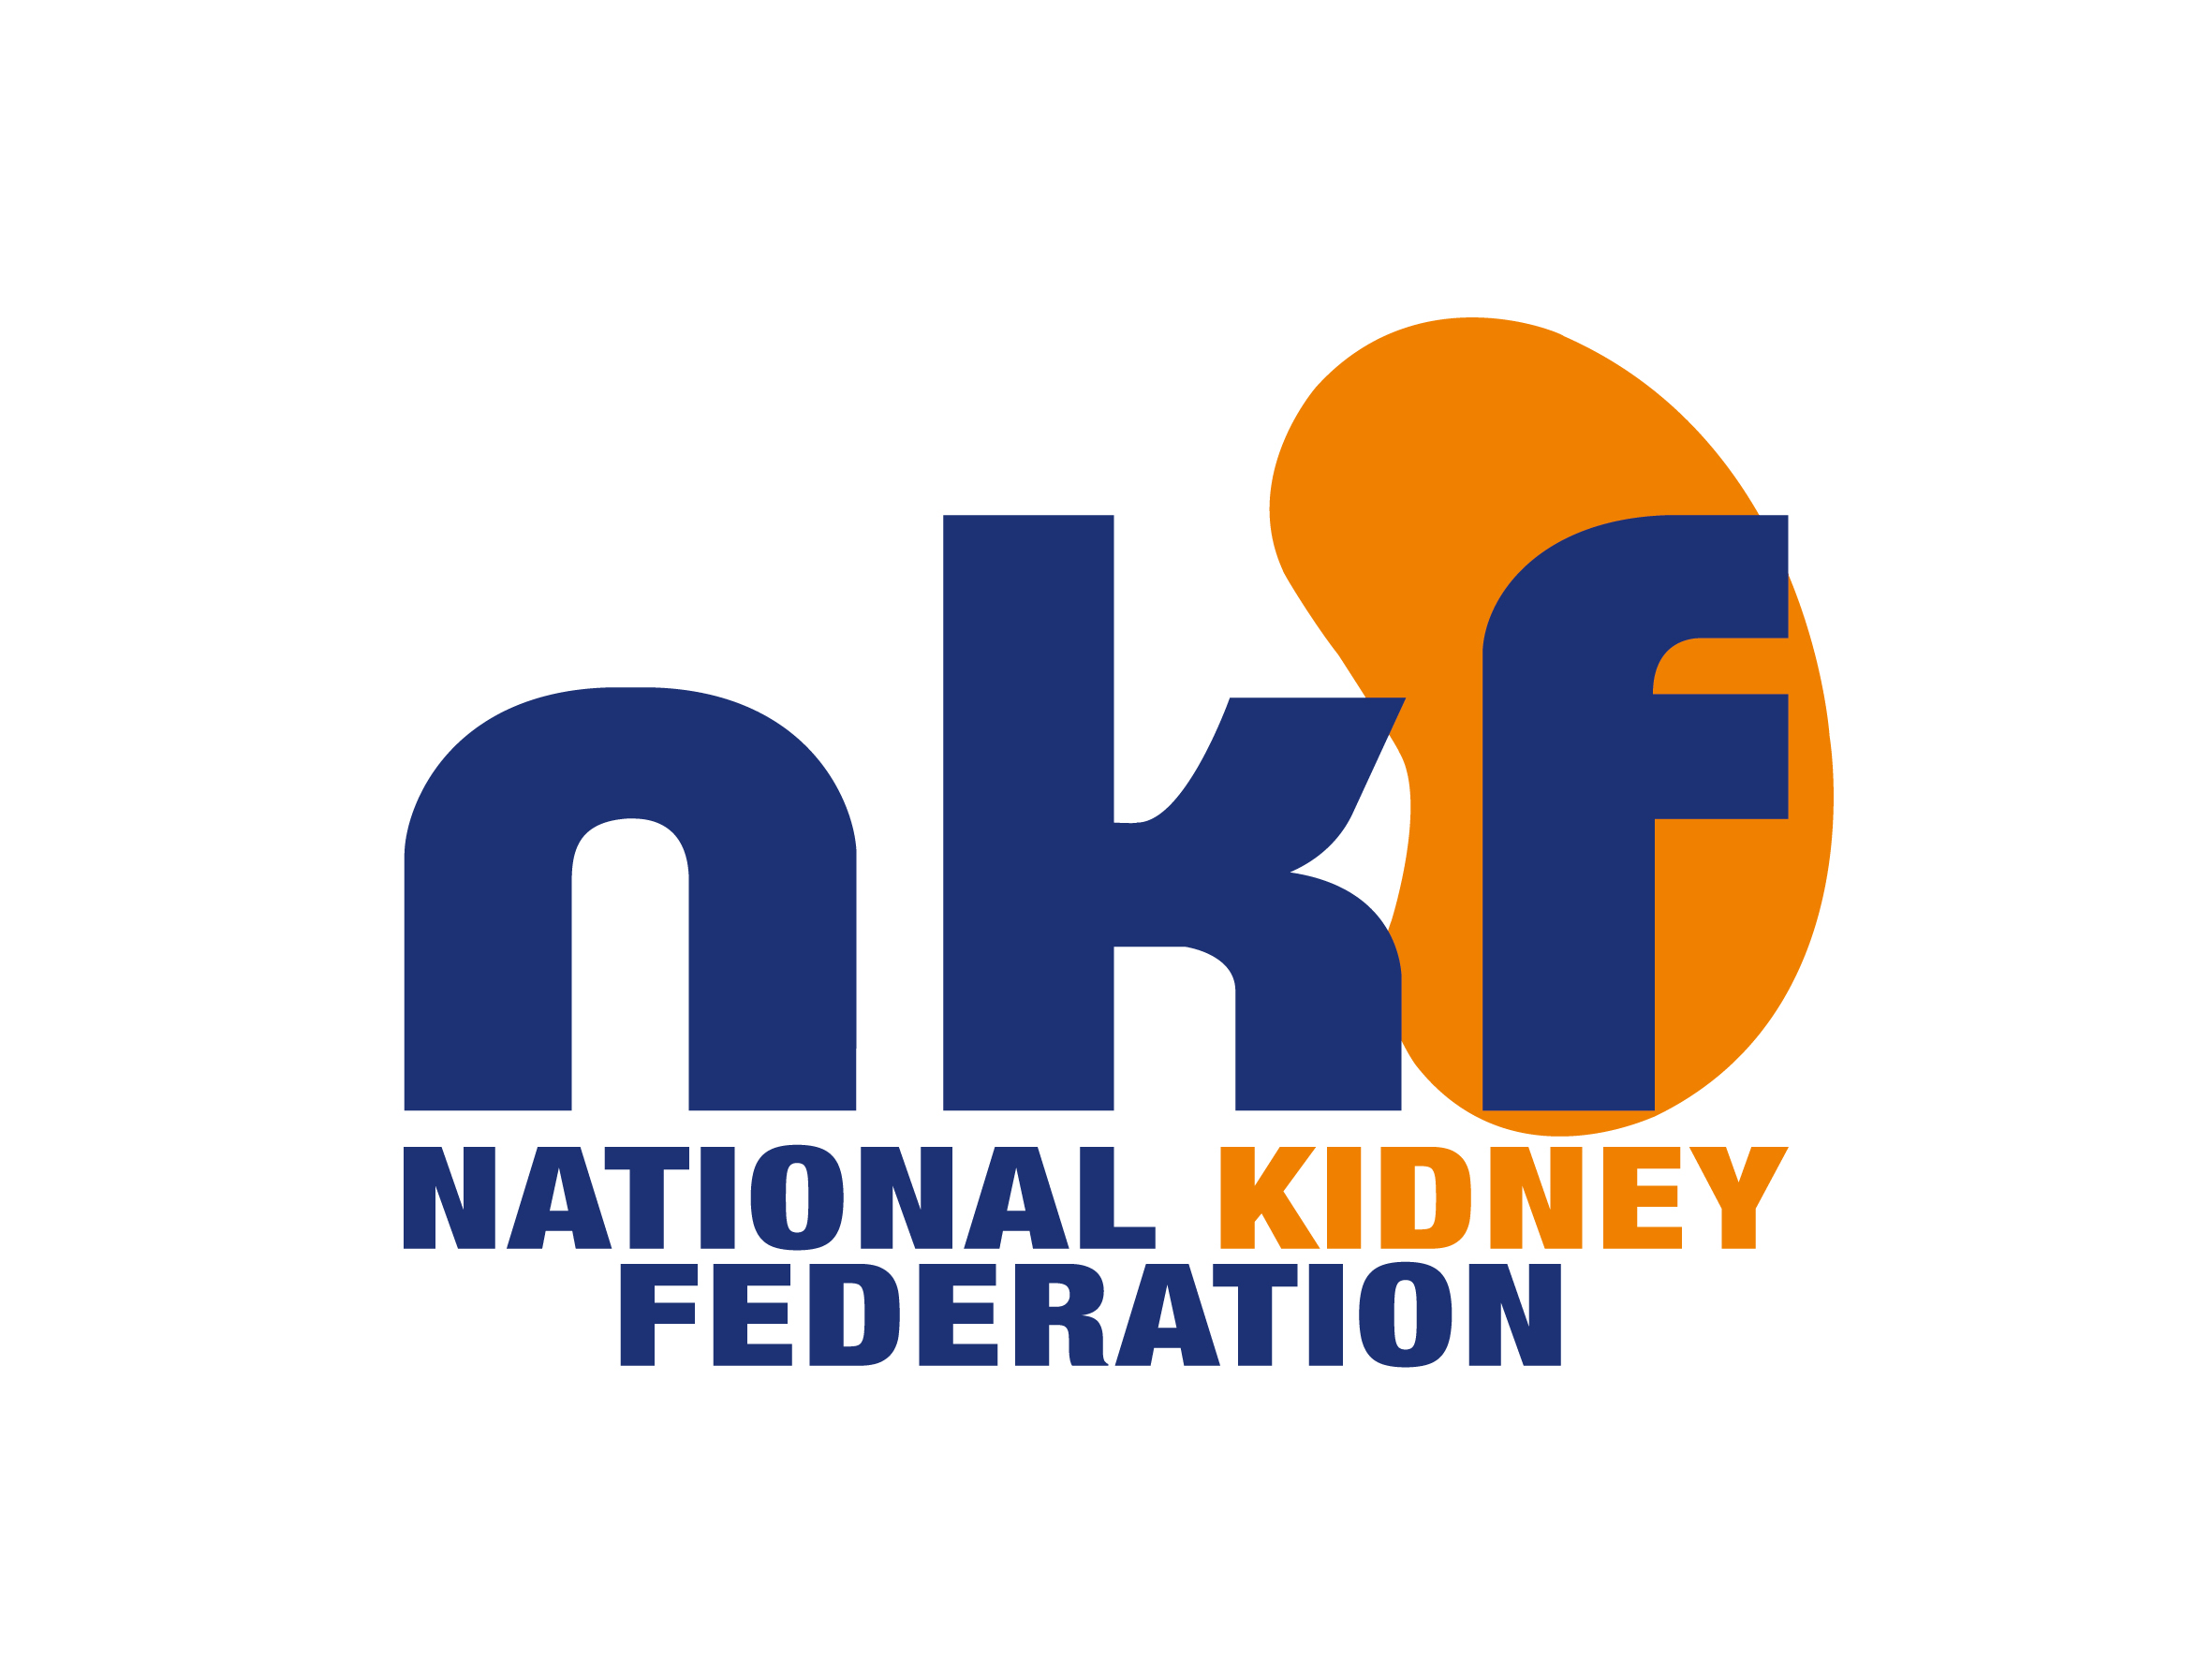 NKF (National Kidney Federation)